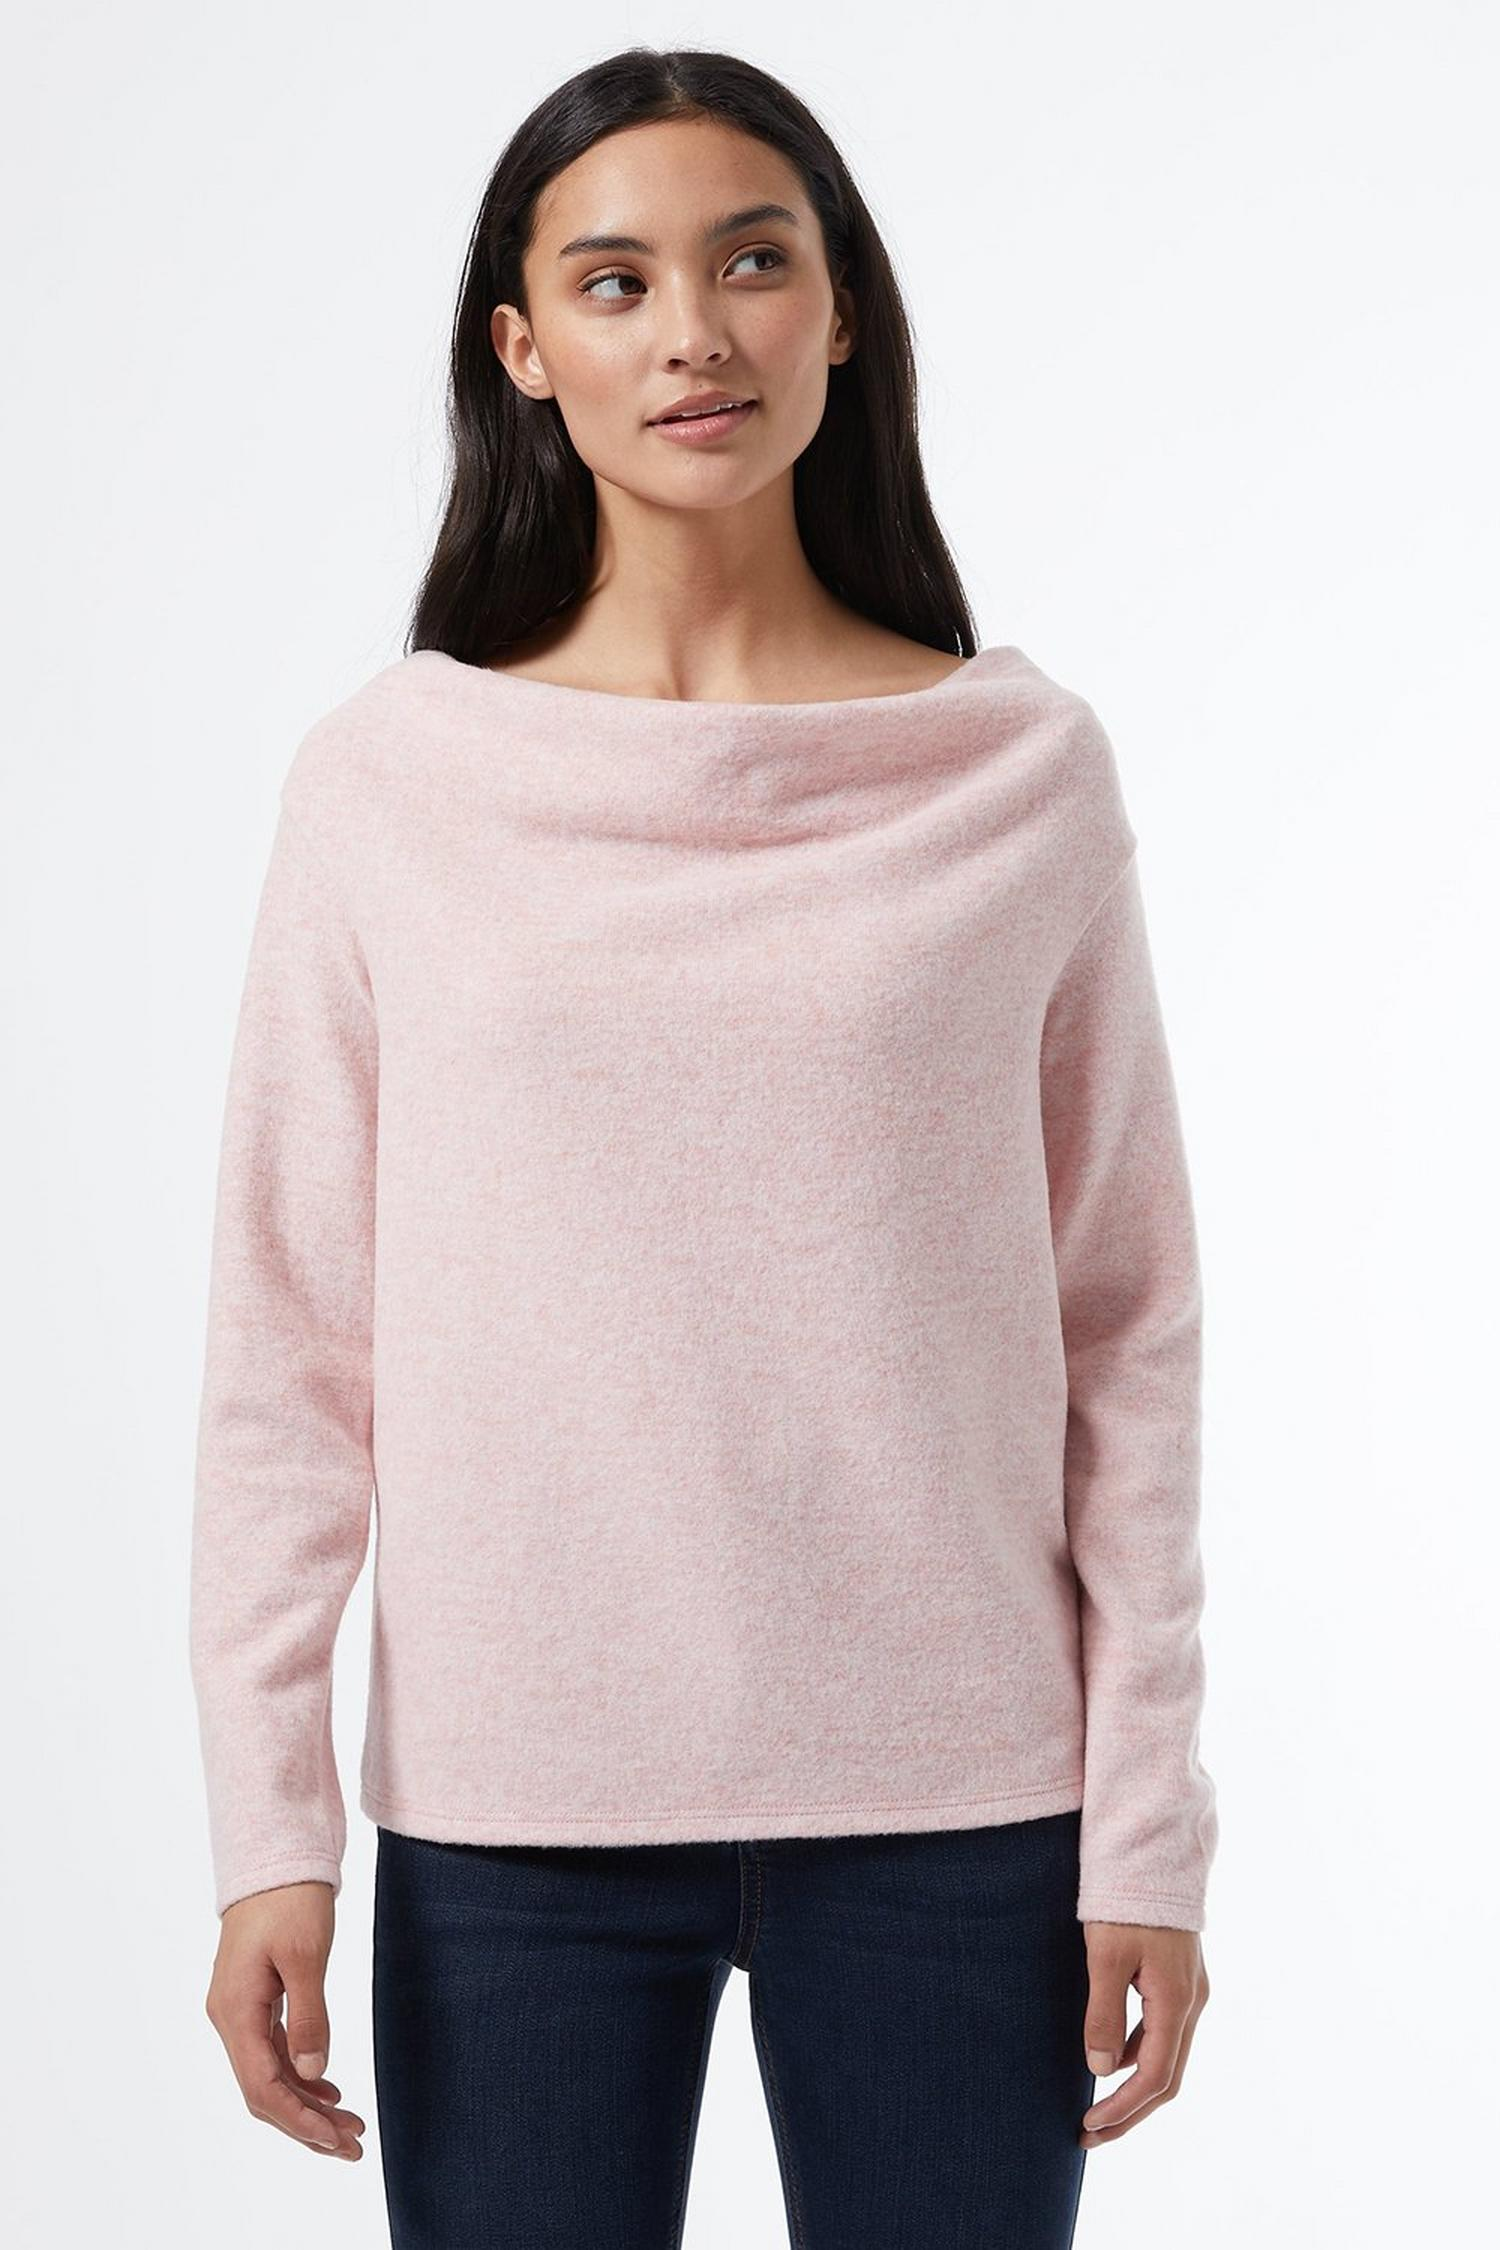 153 Petite Blush Cowl Neck Jumper image number 3